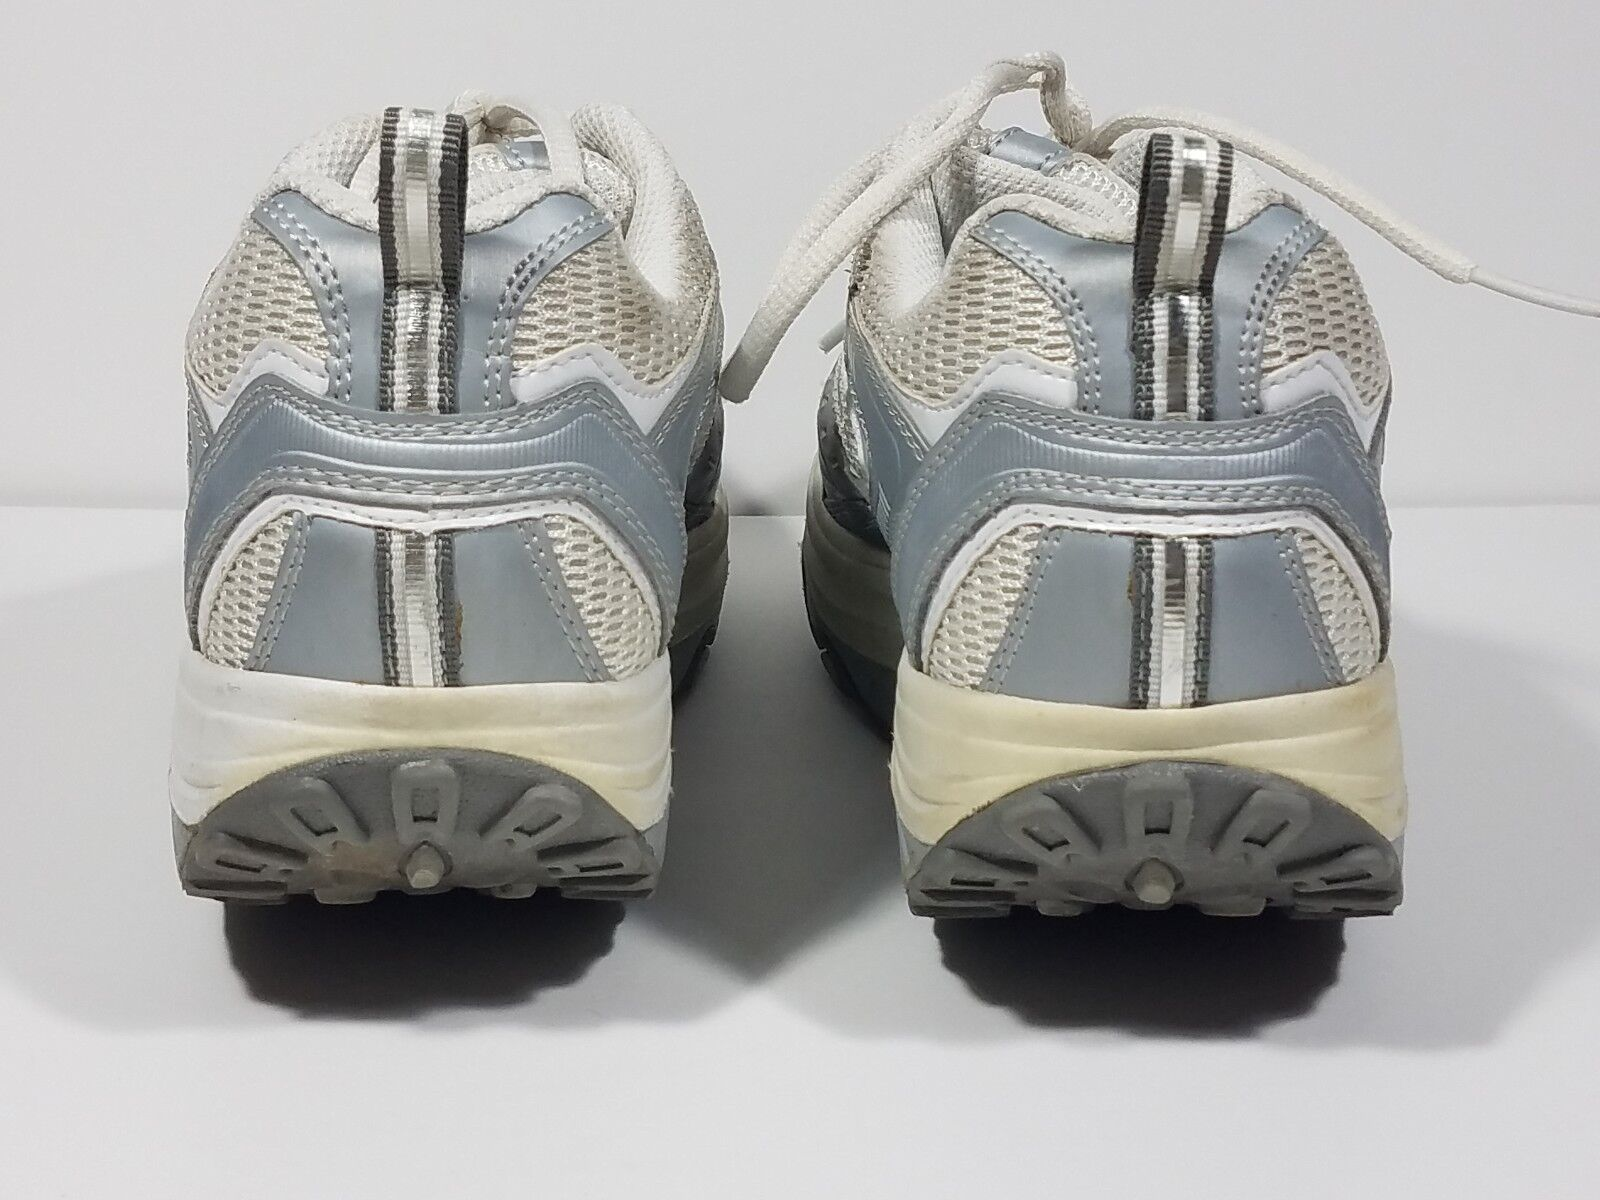 Skechers Shape-Ups Weiß silver lace up athletic 8 fitness walking schuhe ladies 8 athletic 6f8b28